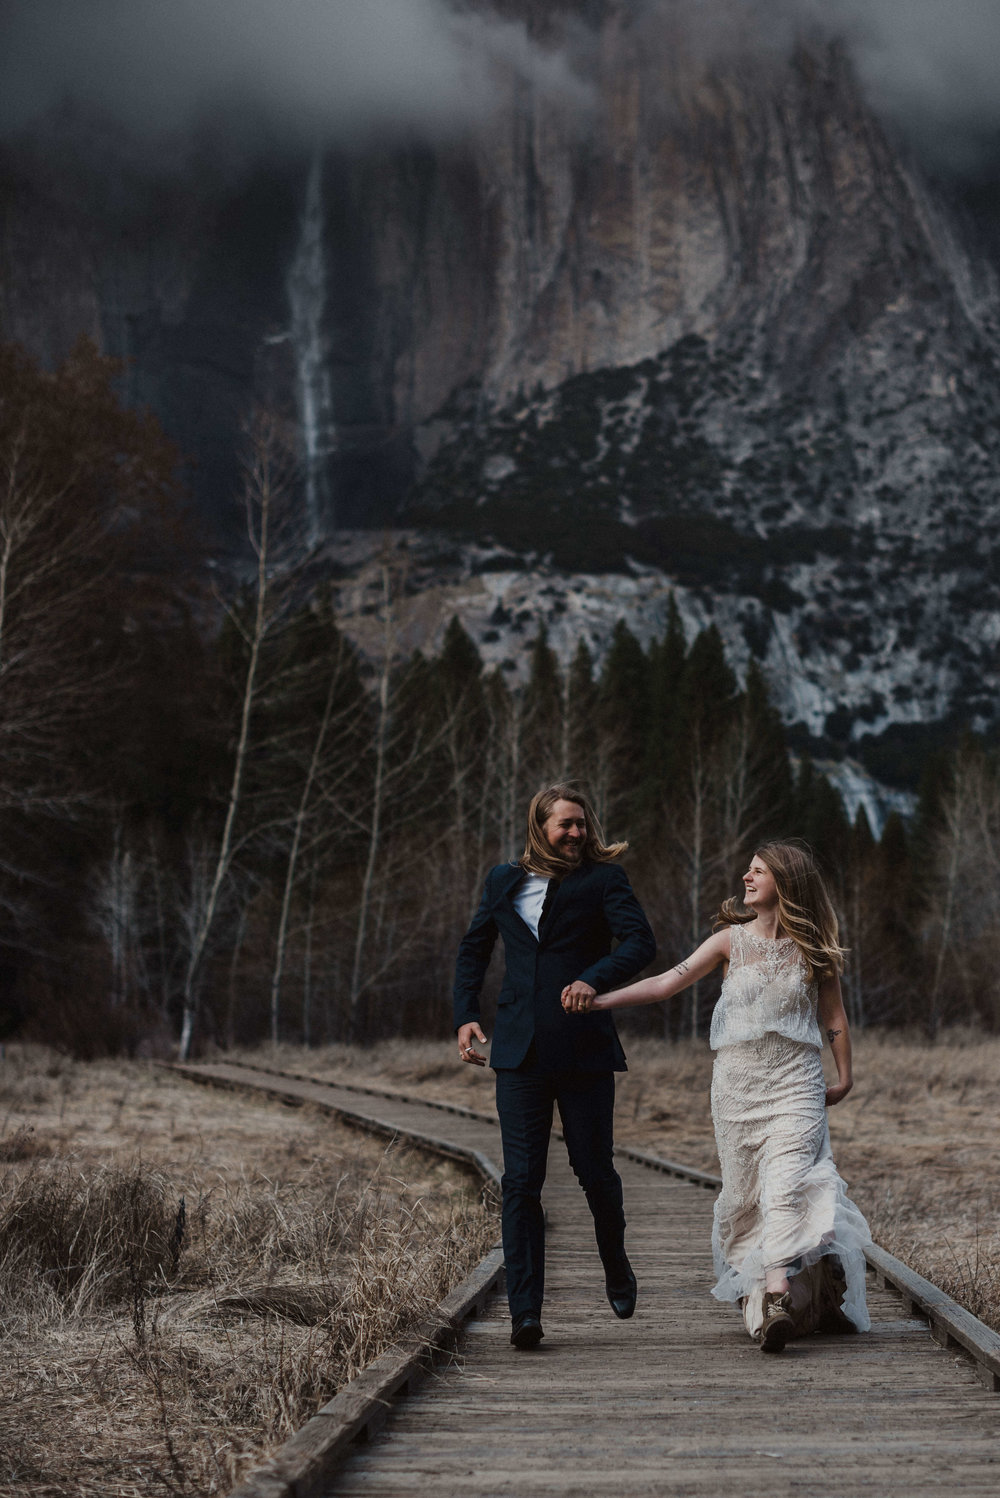 Adventure-Elopement-Yosemite-Valley-30.jpg